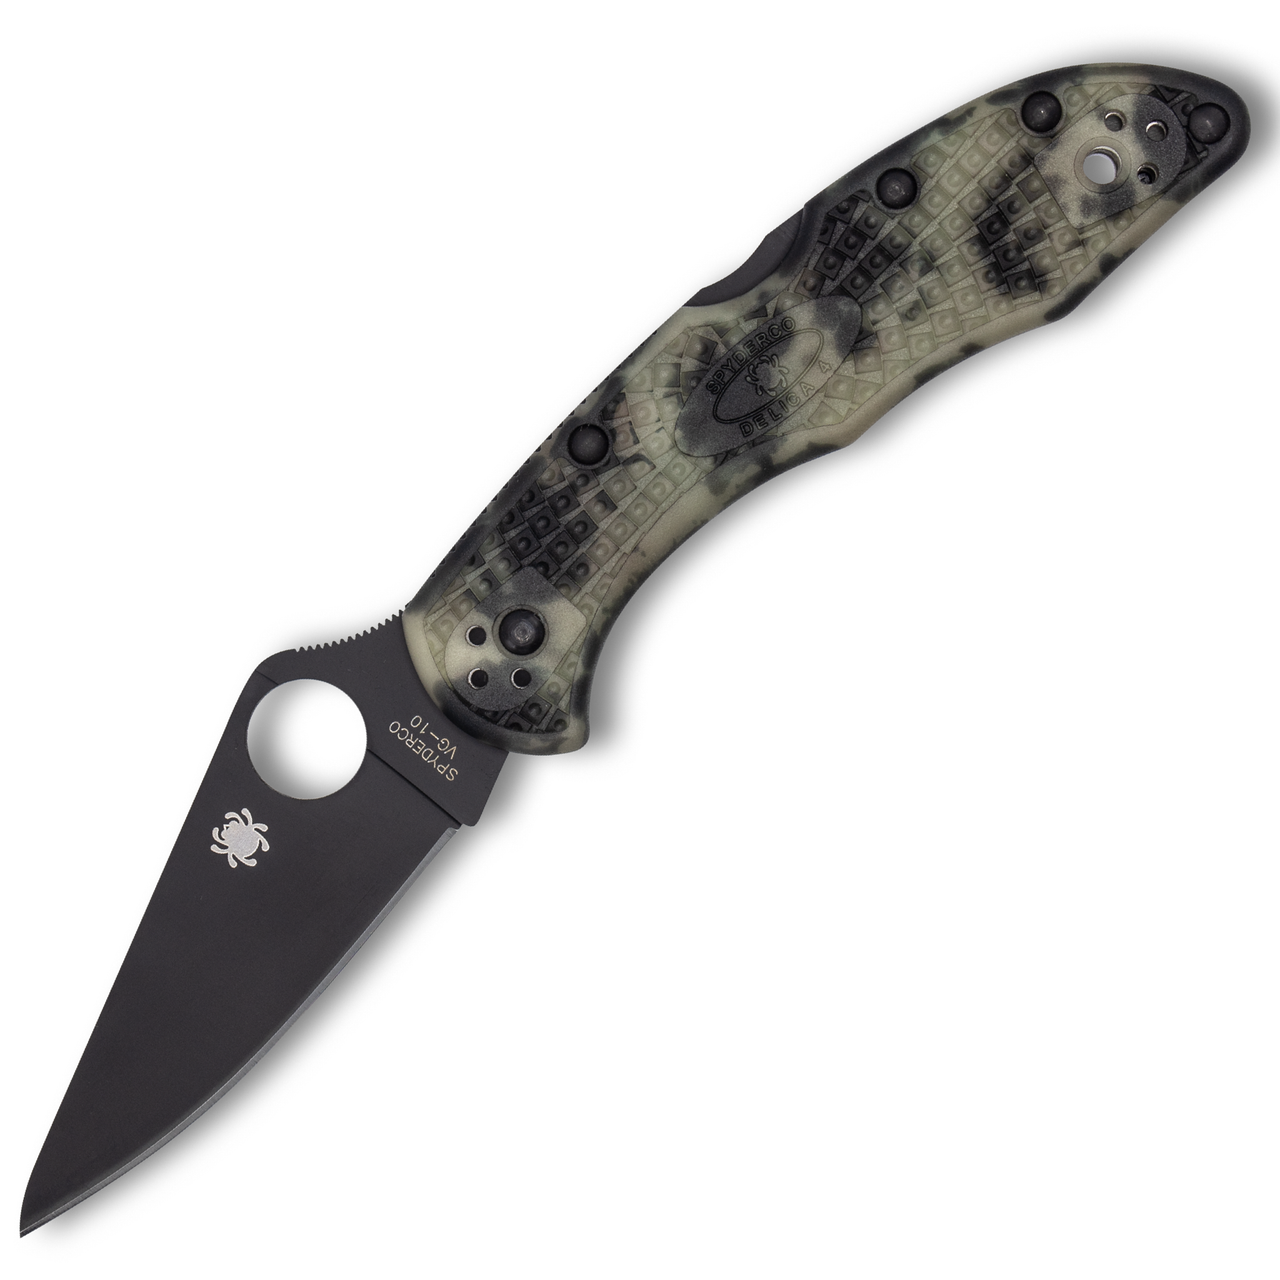 Spyderco Delica 4 ZOME Glow in the Dark, Black Blade *Distributor Exclusive*